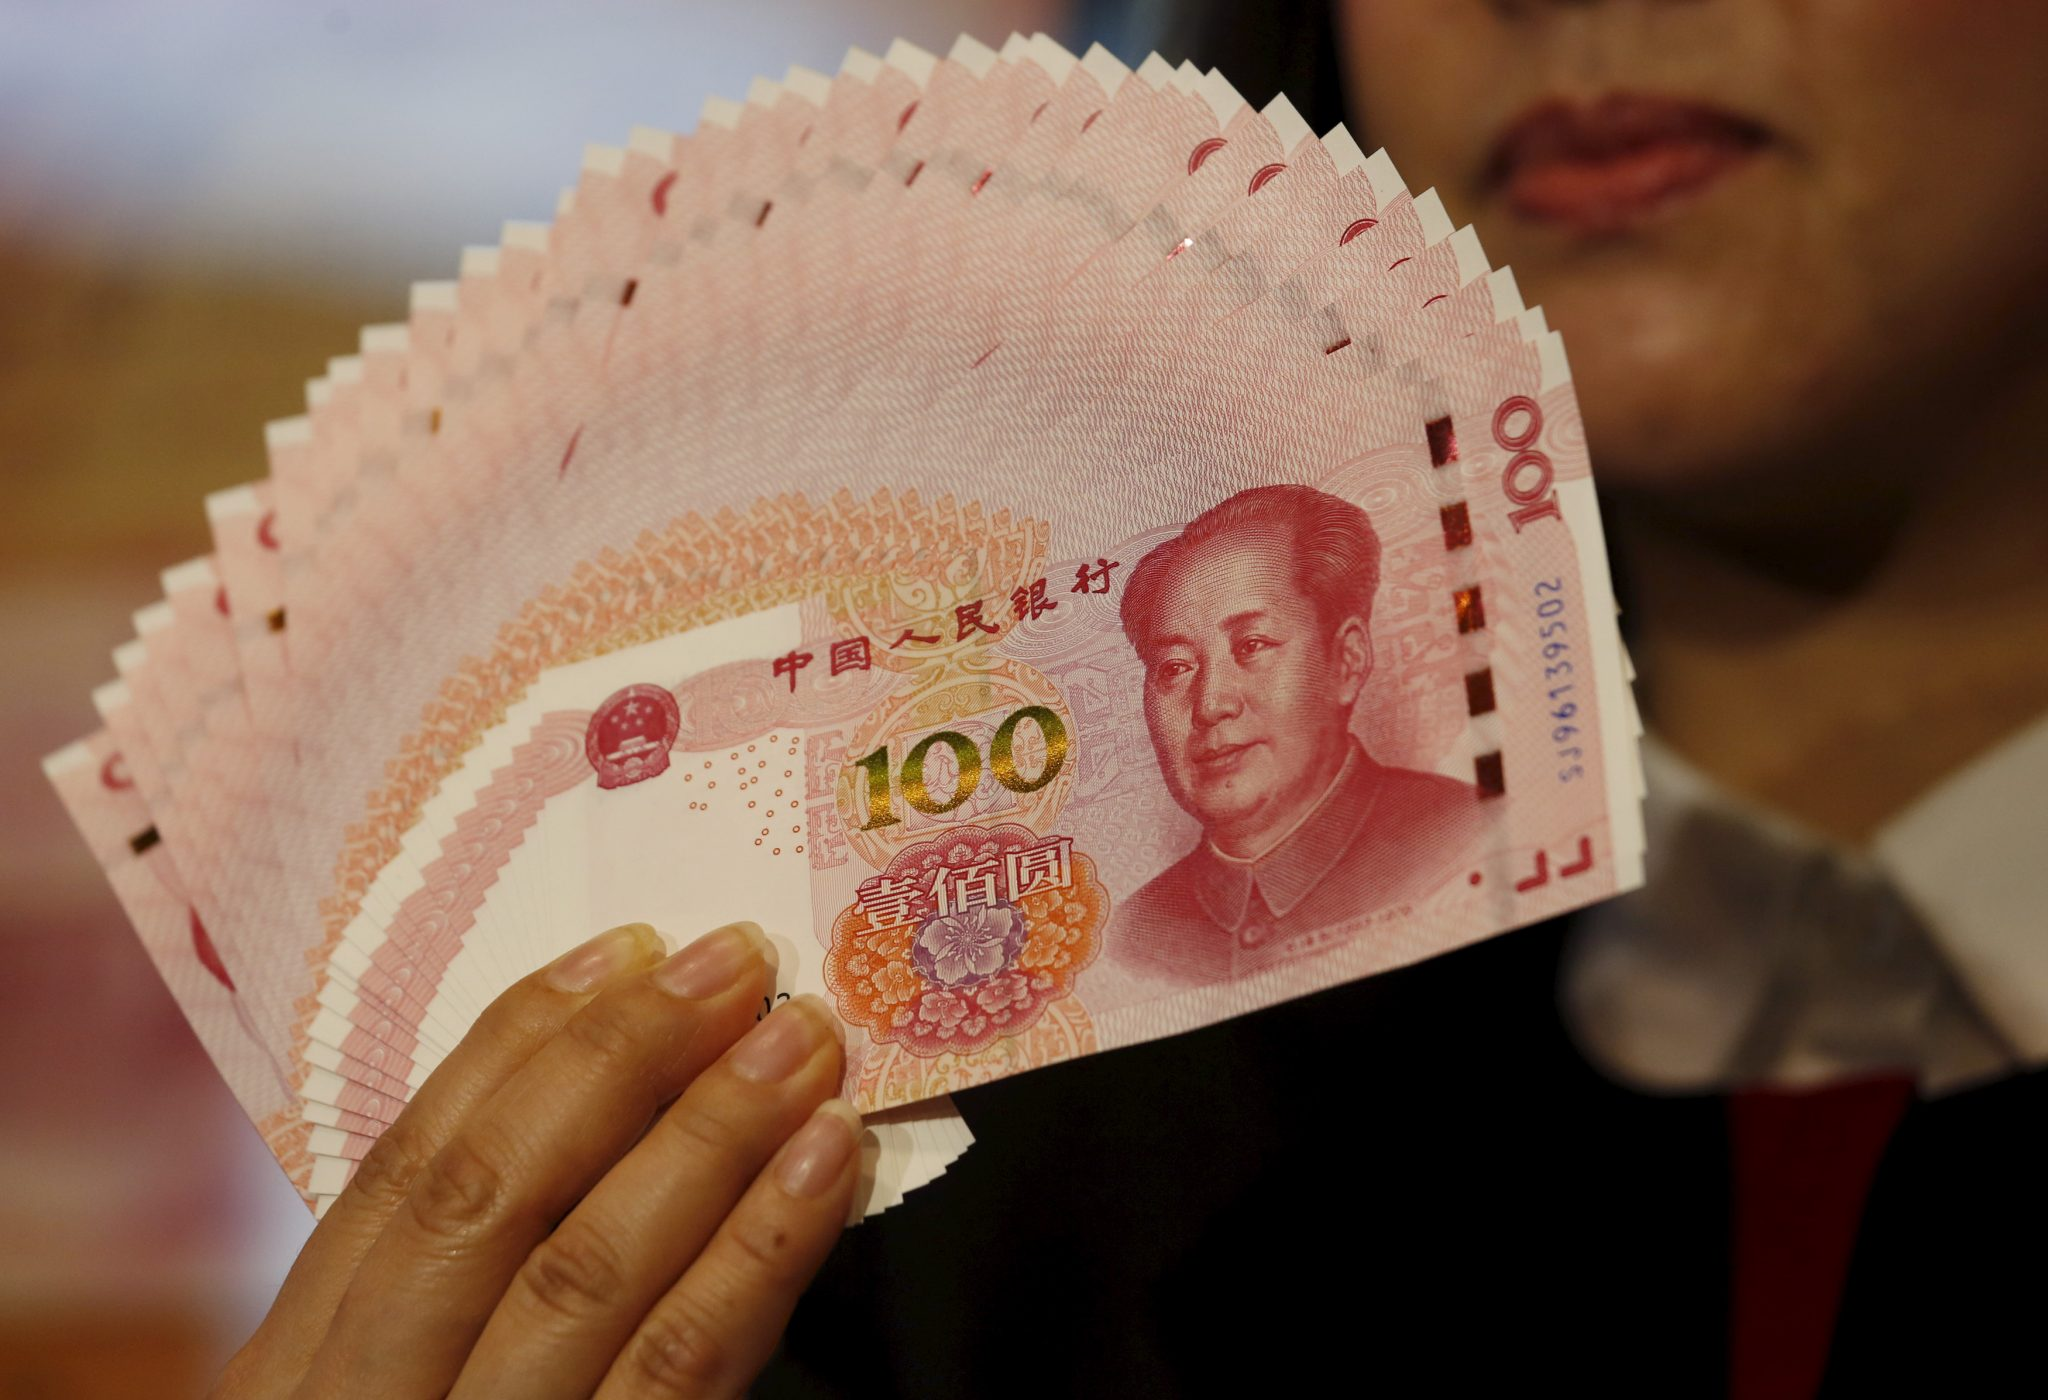 Backpedalling or a step forward in renminbi reform?